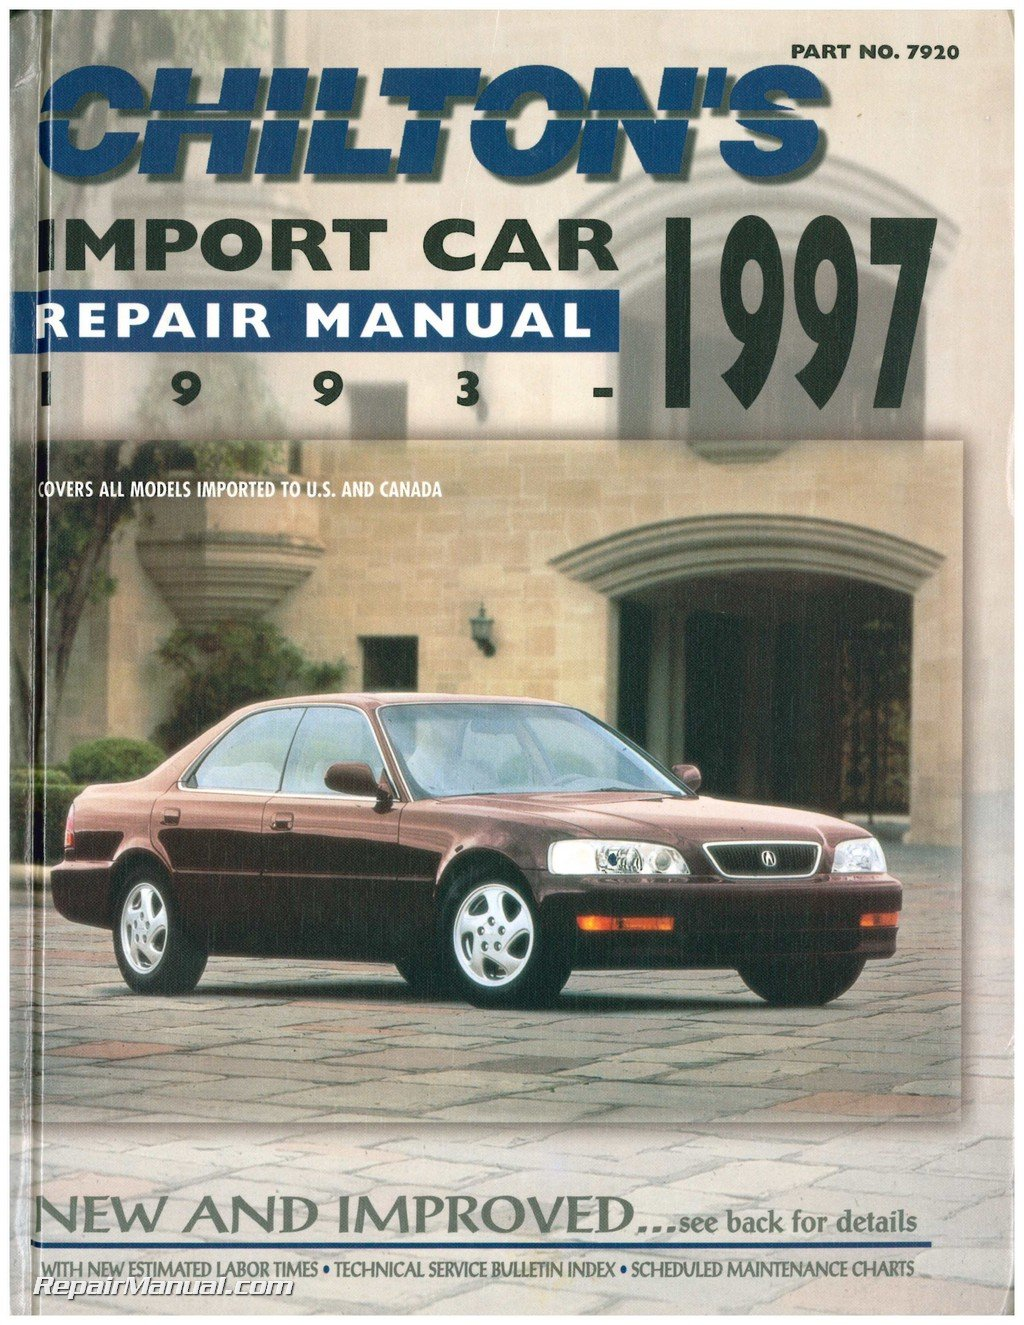 Ch7920 chilton import car repair manual 1993 1997 manufacturer ch7920 chilton import car repair manual 1993 1997 manufacturer amazon books fandeluxe